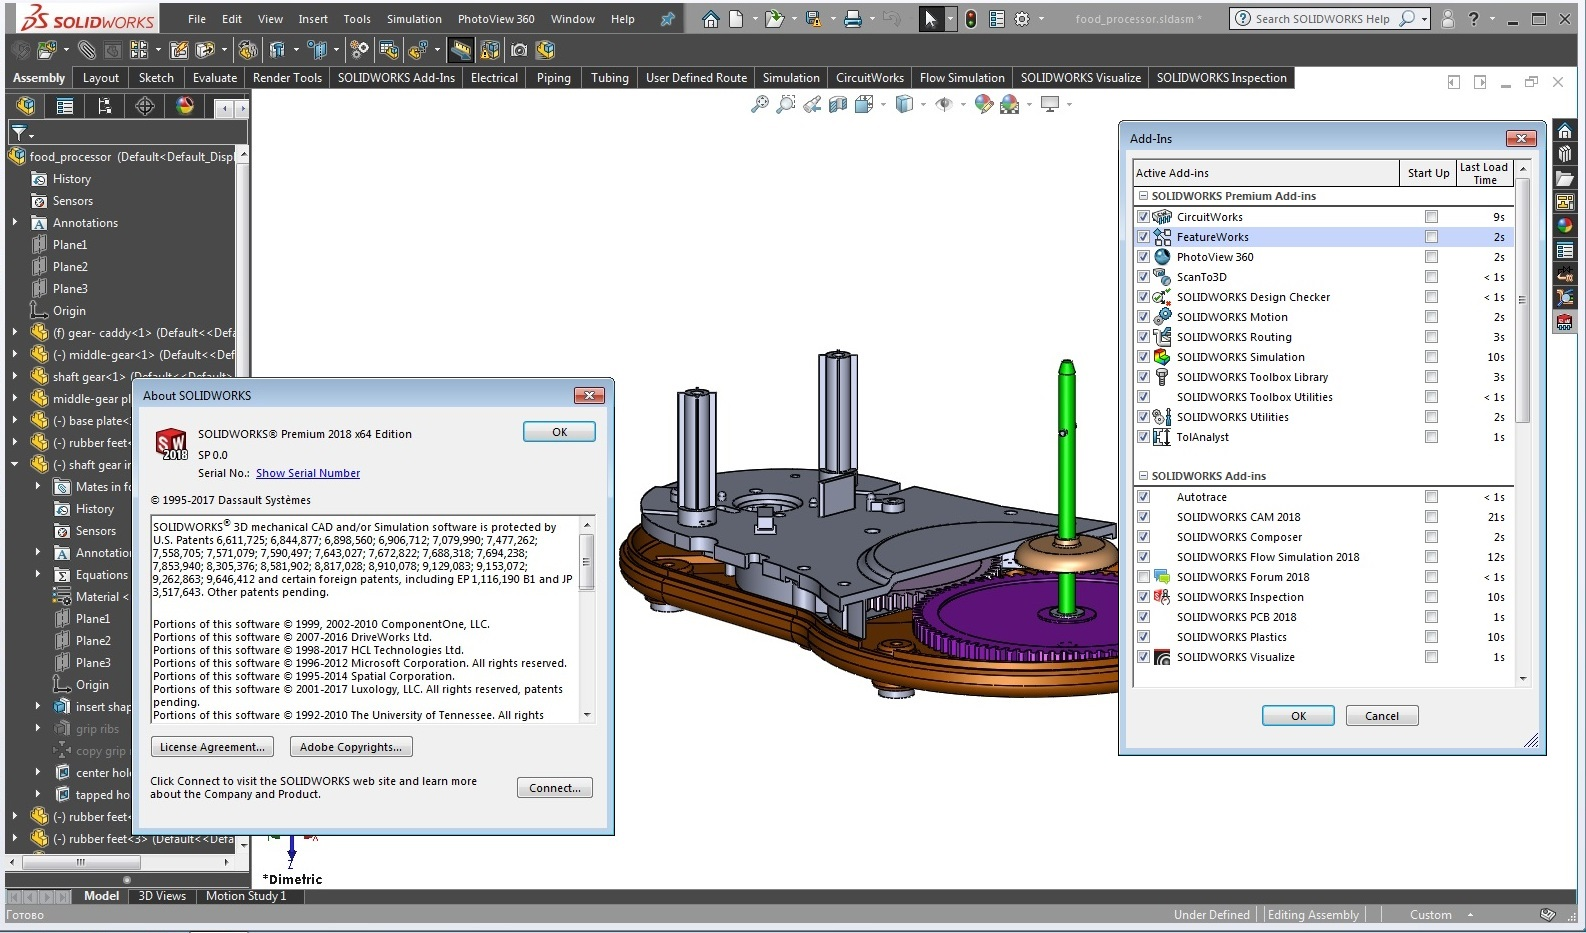 Design with solidworks 2018 full license forever